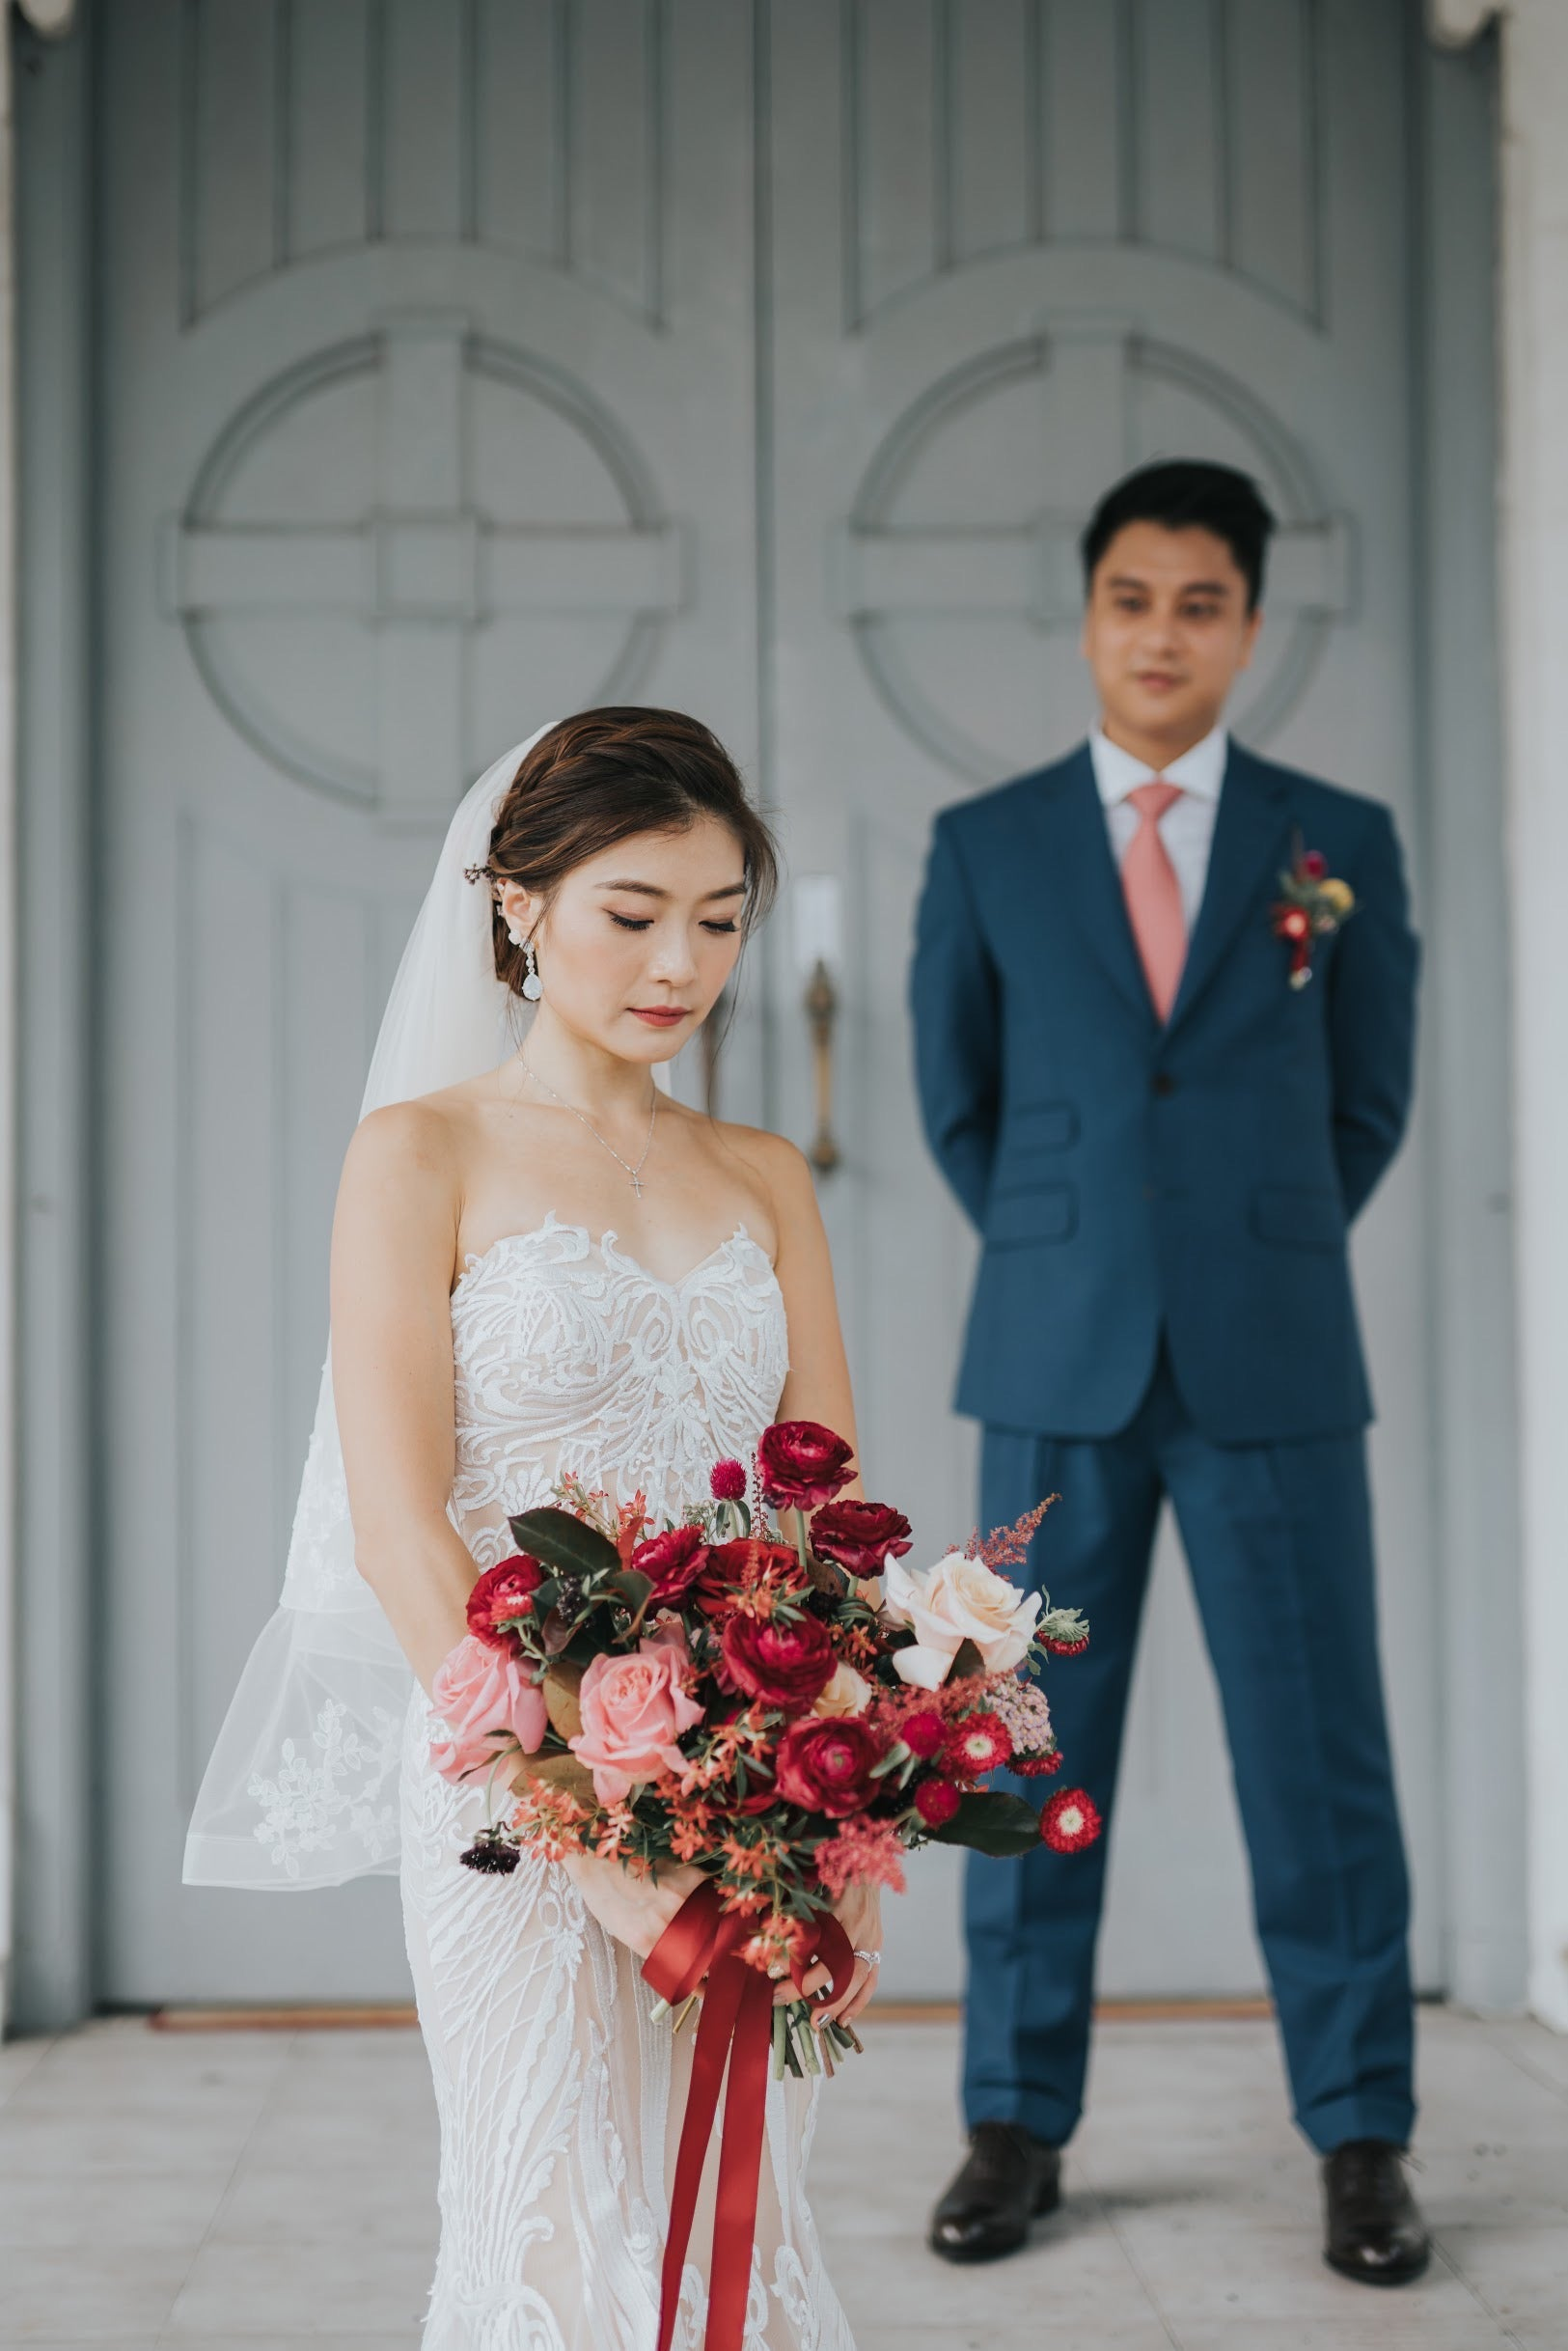 Wedding photoshoot in wedding gown with crimson bridal bouquet and red posy ribbon